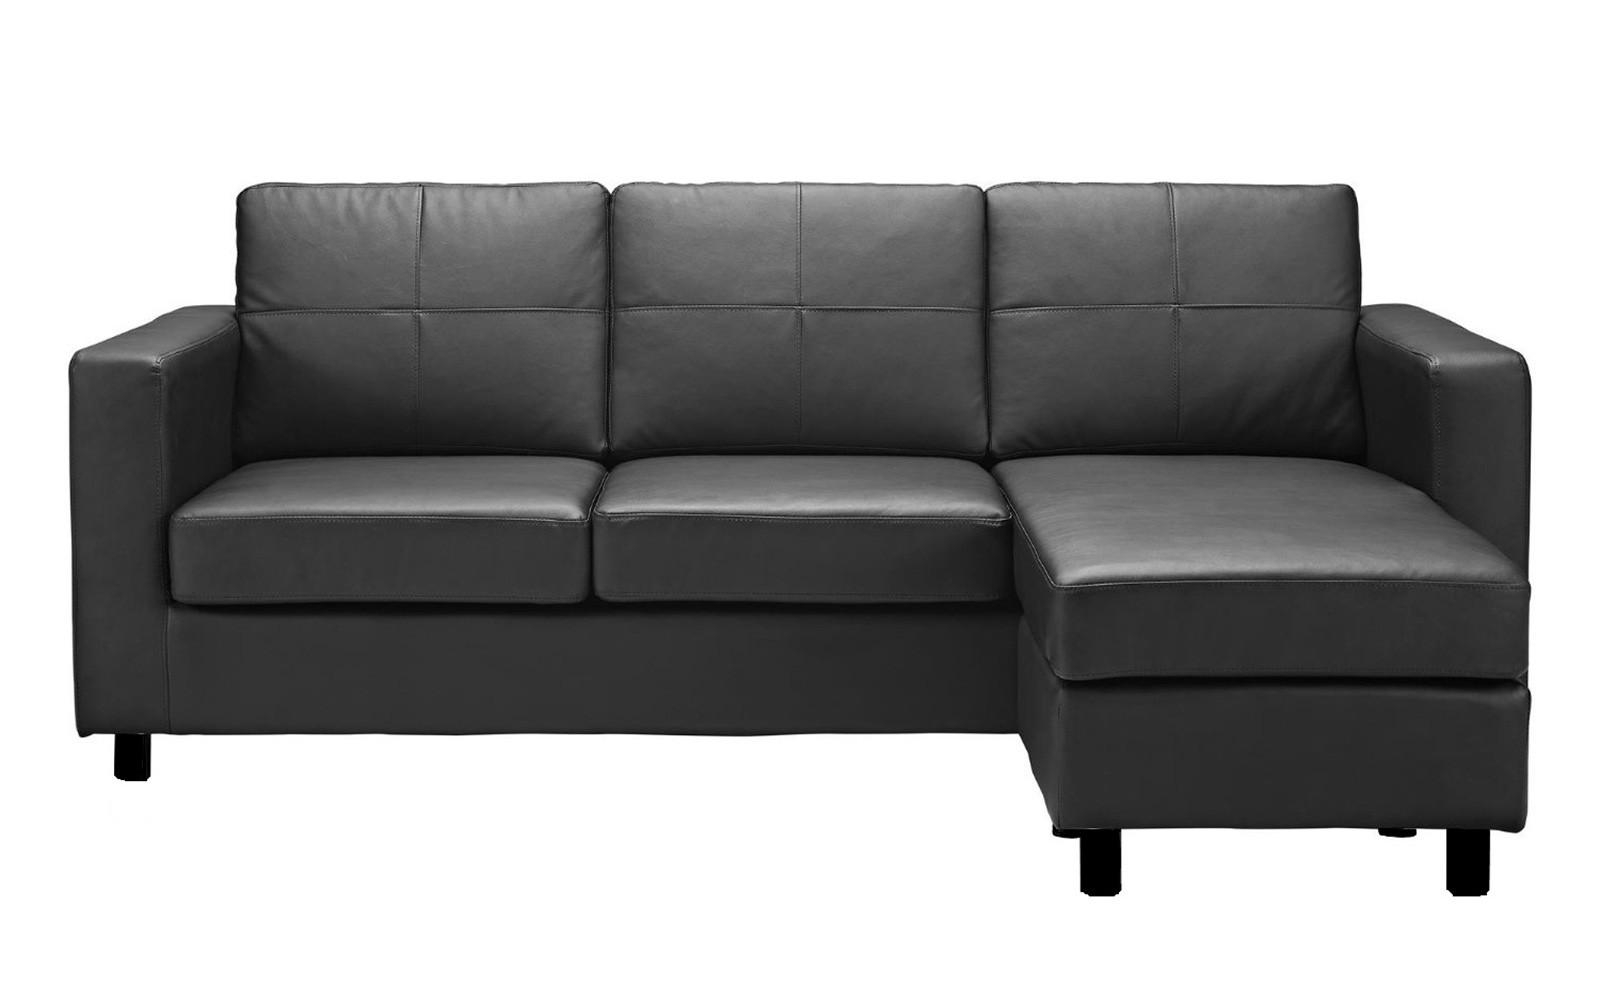 modern bonded leather sectional sofa with recliners contemporary table drawers 20 inspirations sofas for small spaces